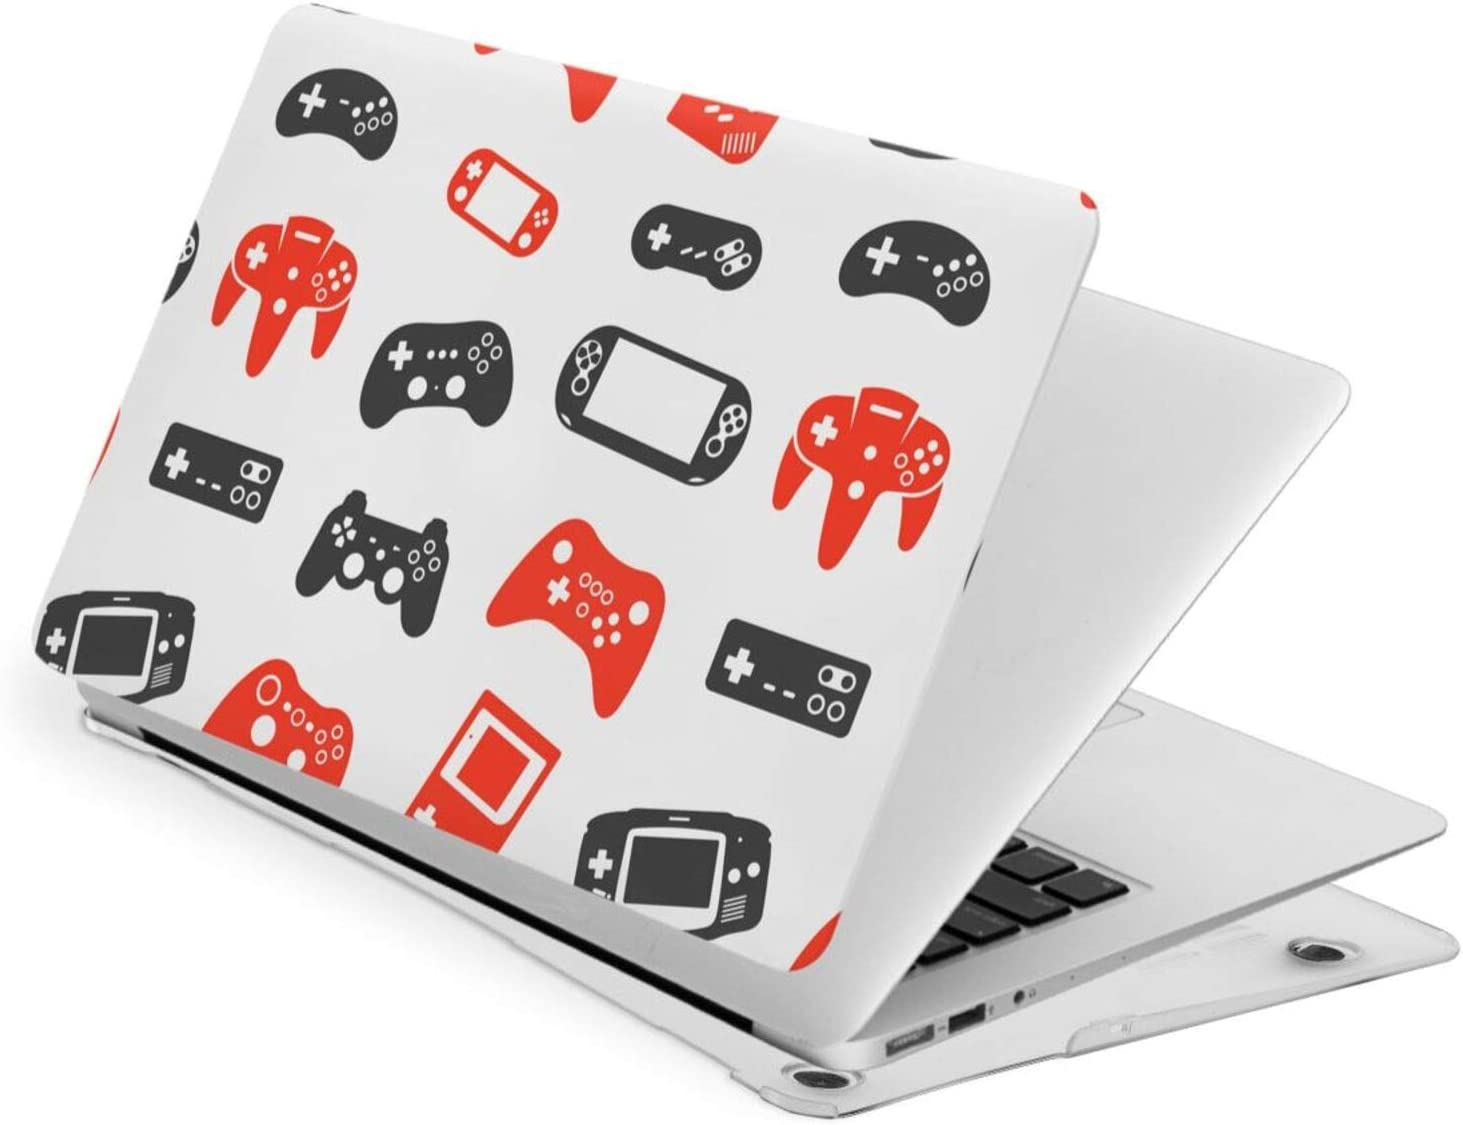 Gamepad Silhouette Compatible with MacBook 13 Inch 2020 Air Case Super special price Very popular!